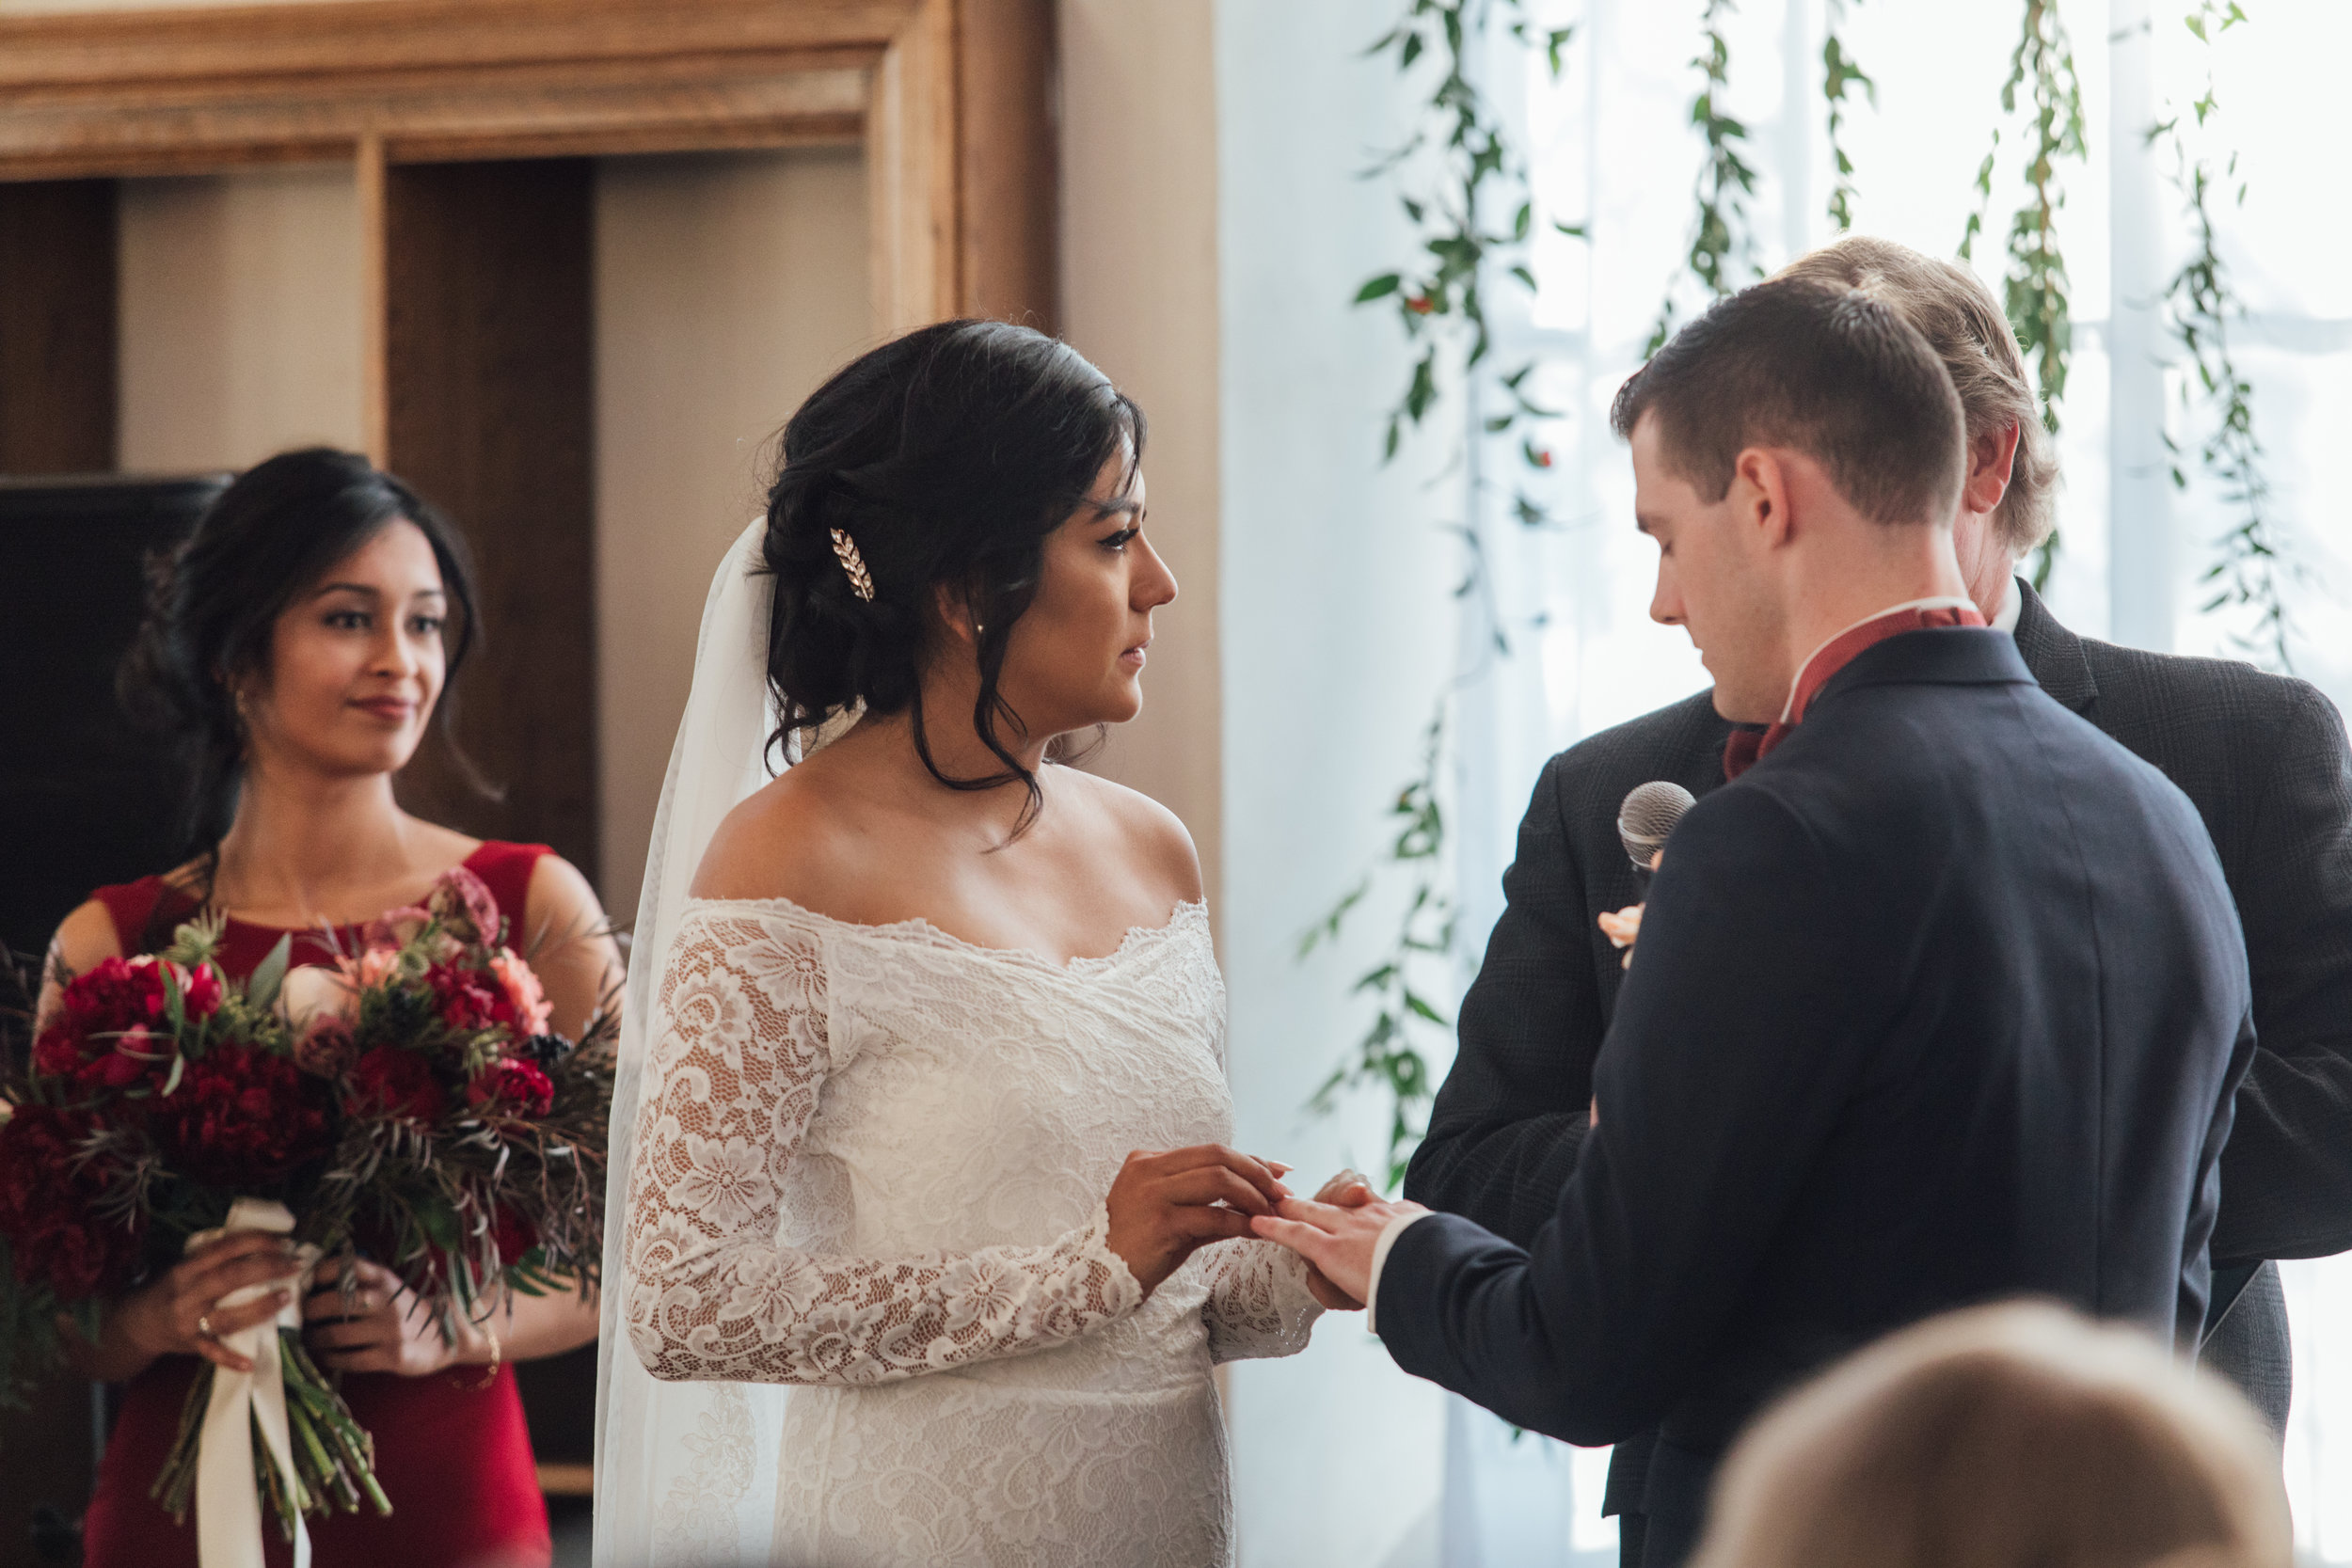 Wedding_GregDamarie_2018_194-2.jpg